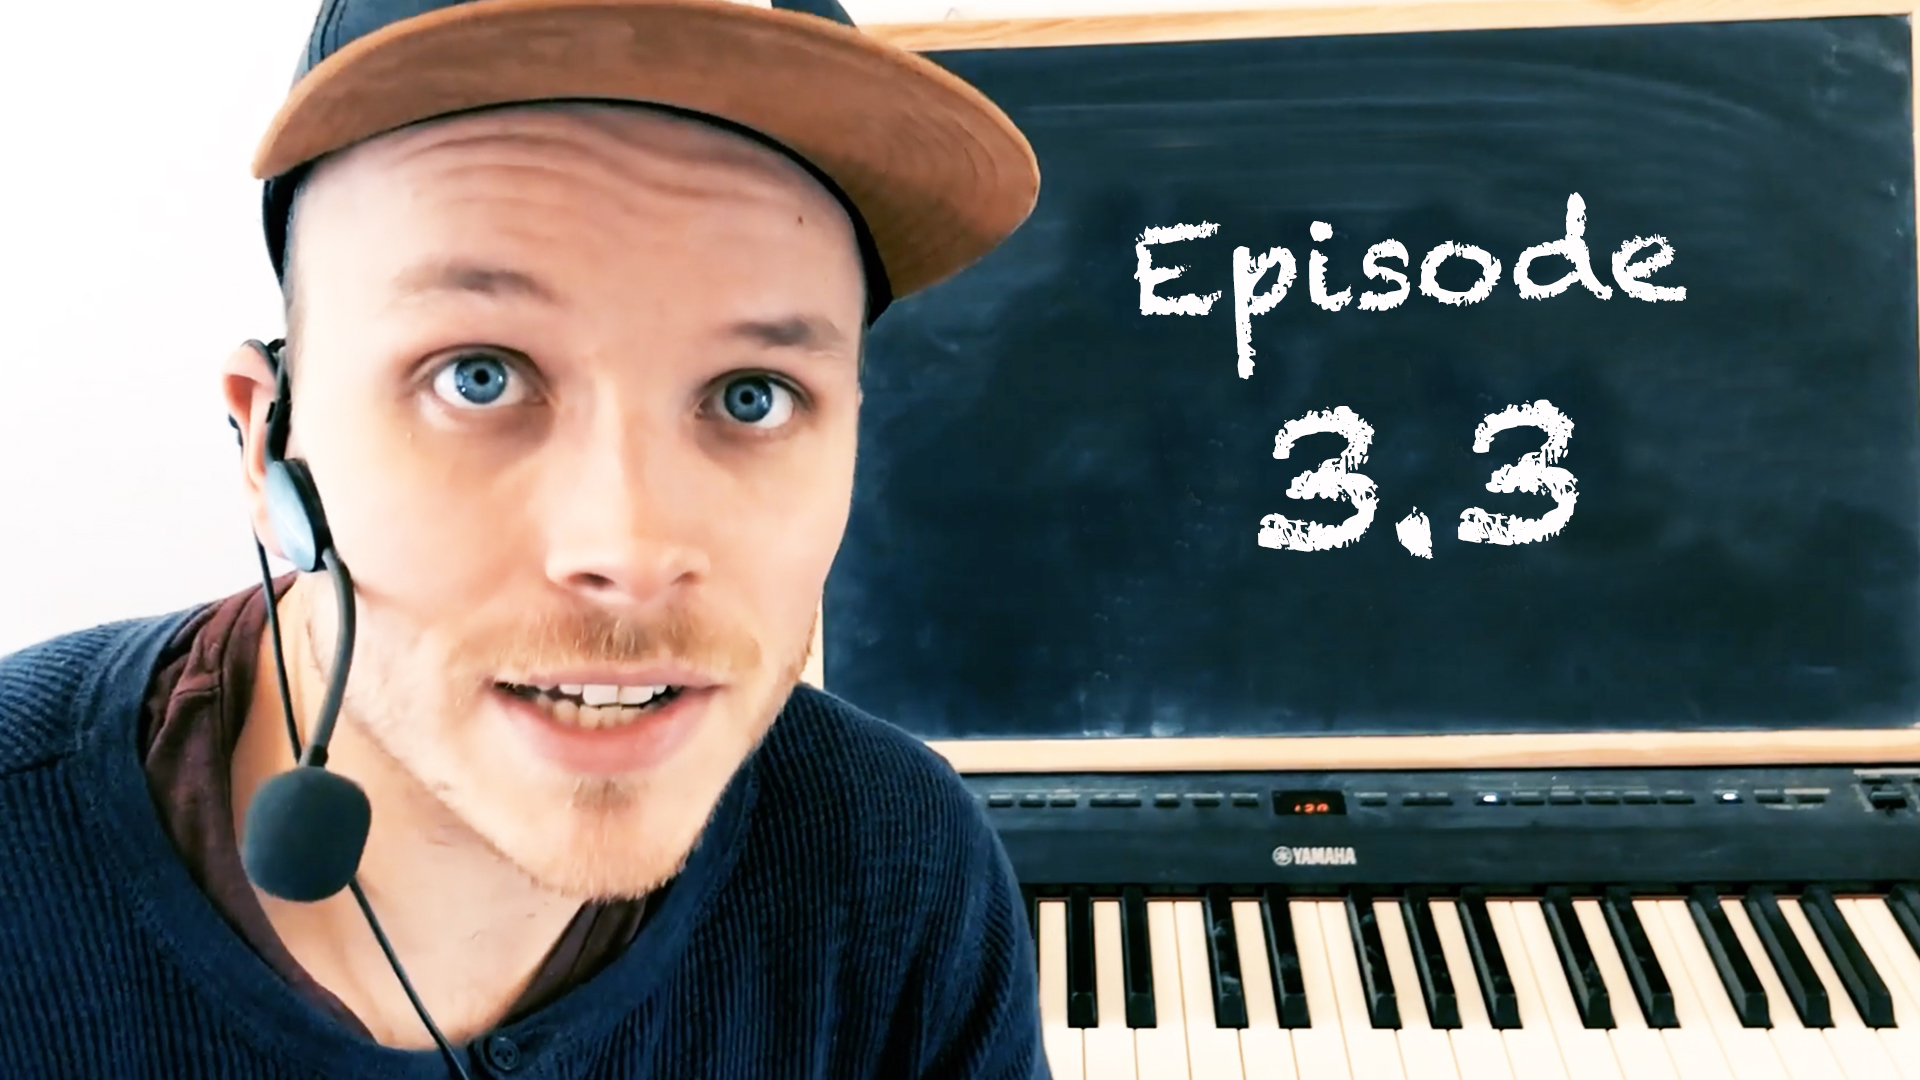 Ep 3. 3 Piano Modes Explained